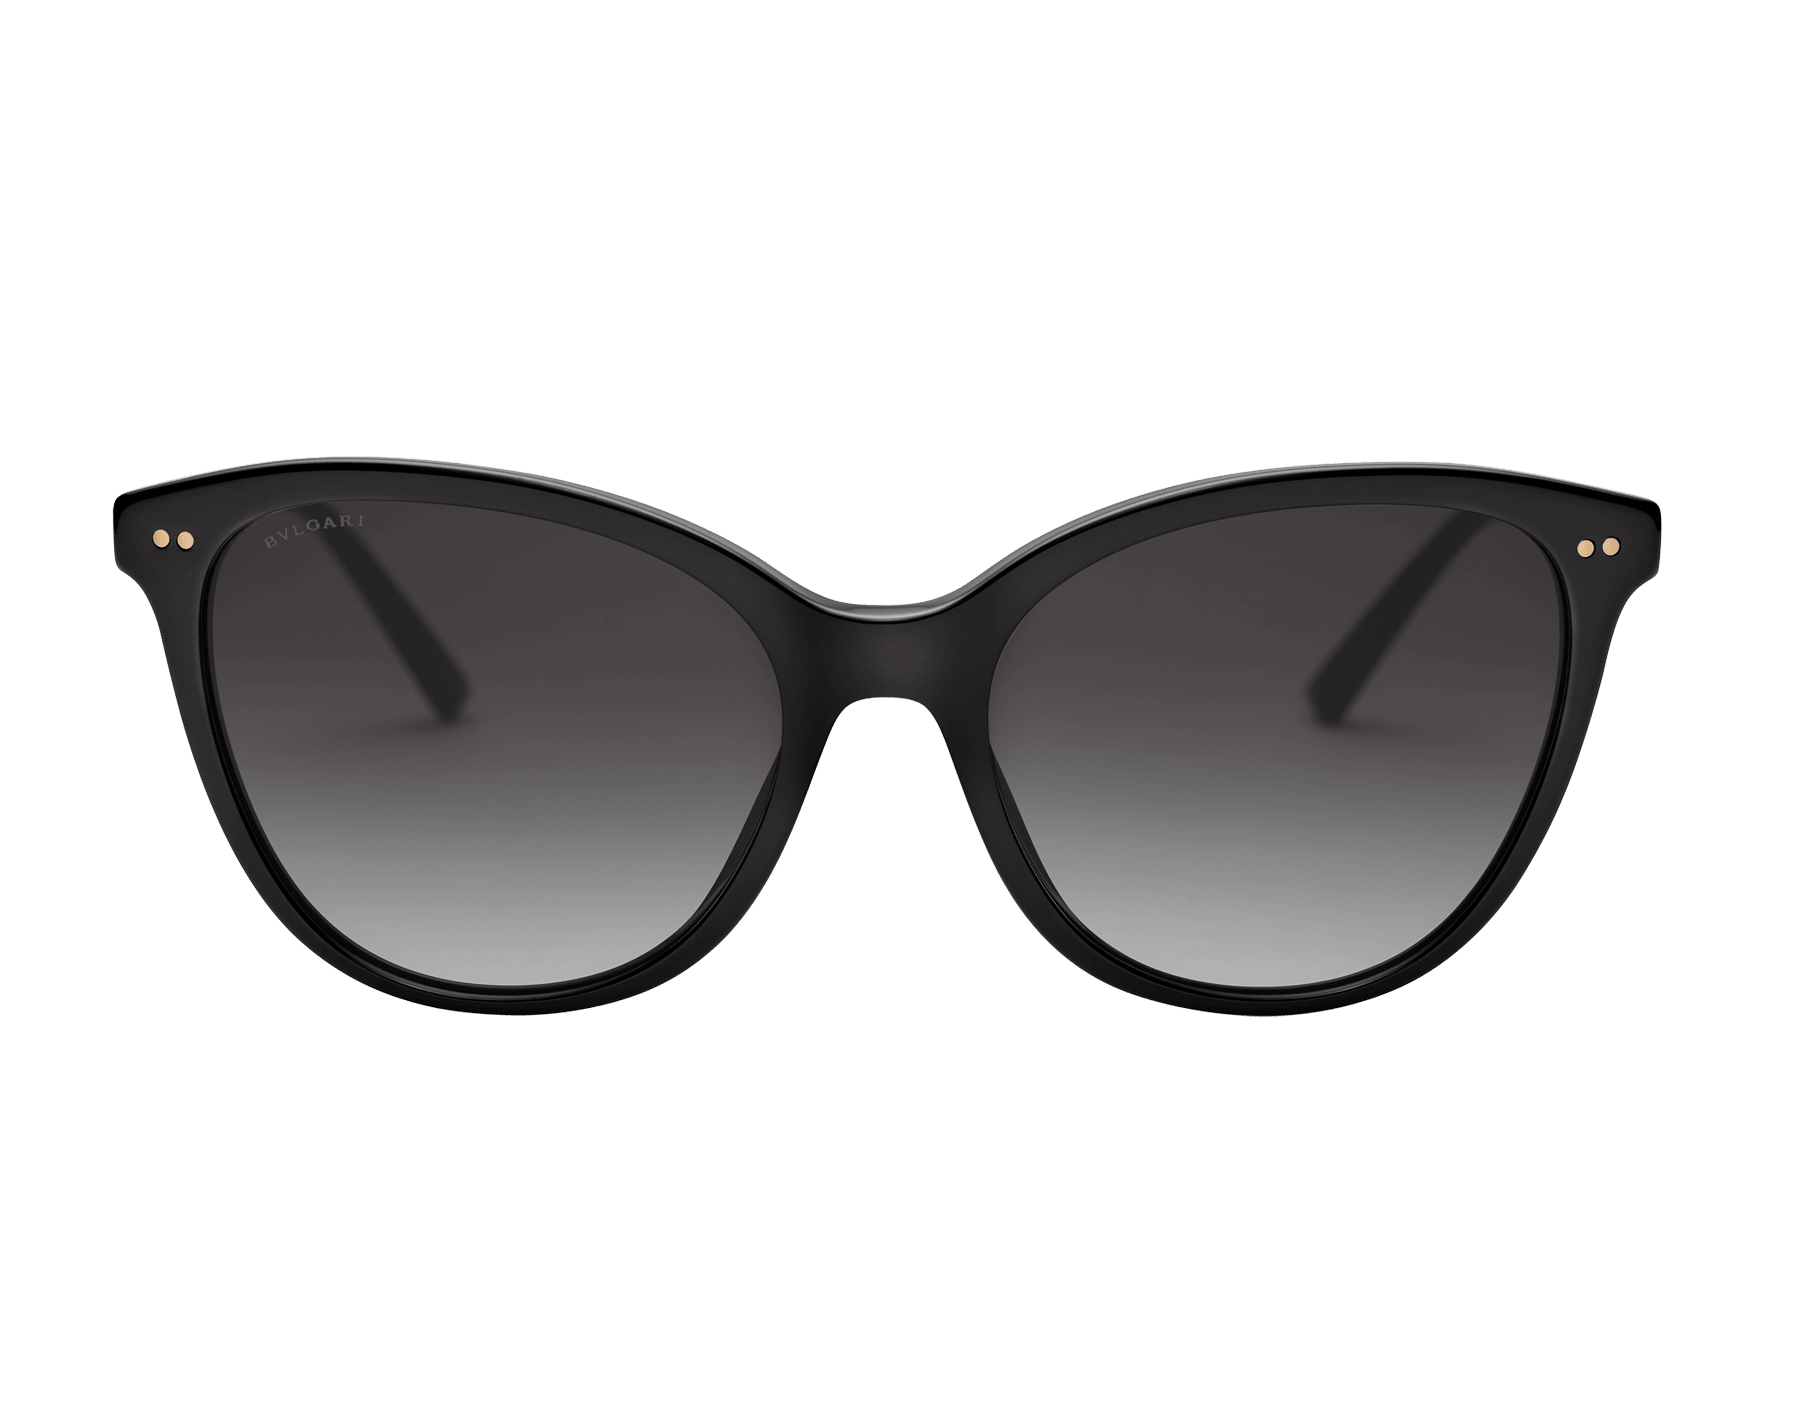 B.zero1 acetate cat-eye sunglasses 904085 image 2